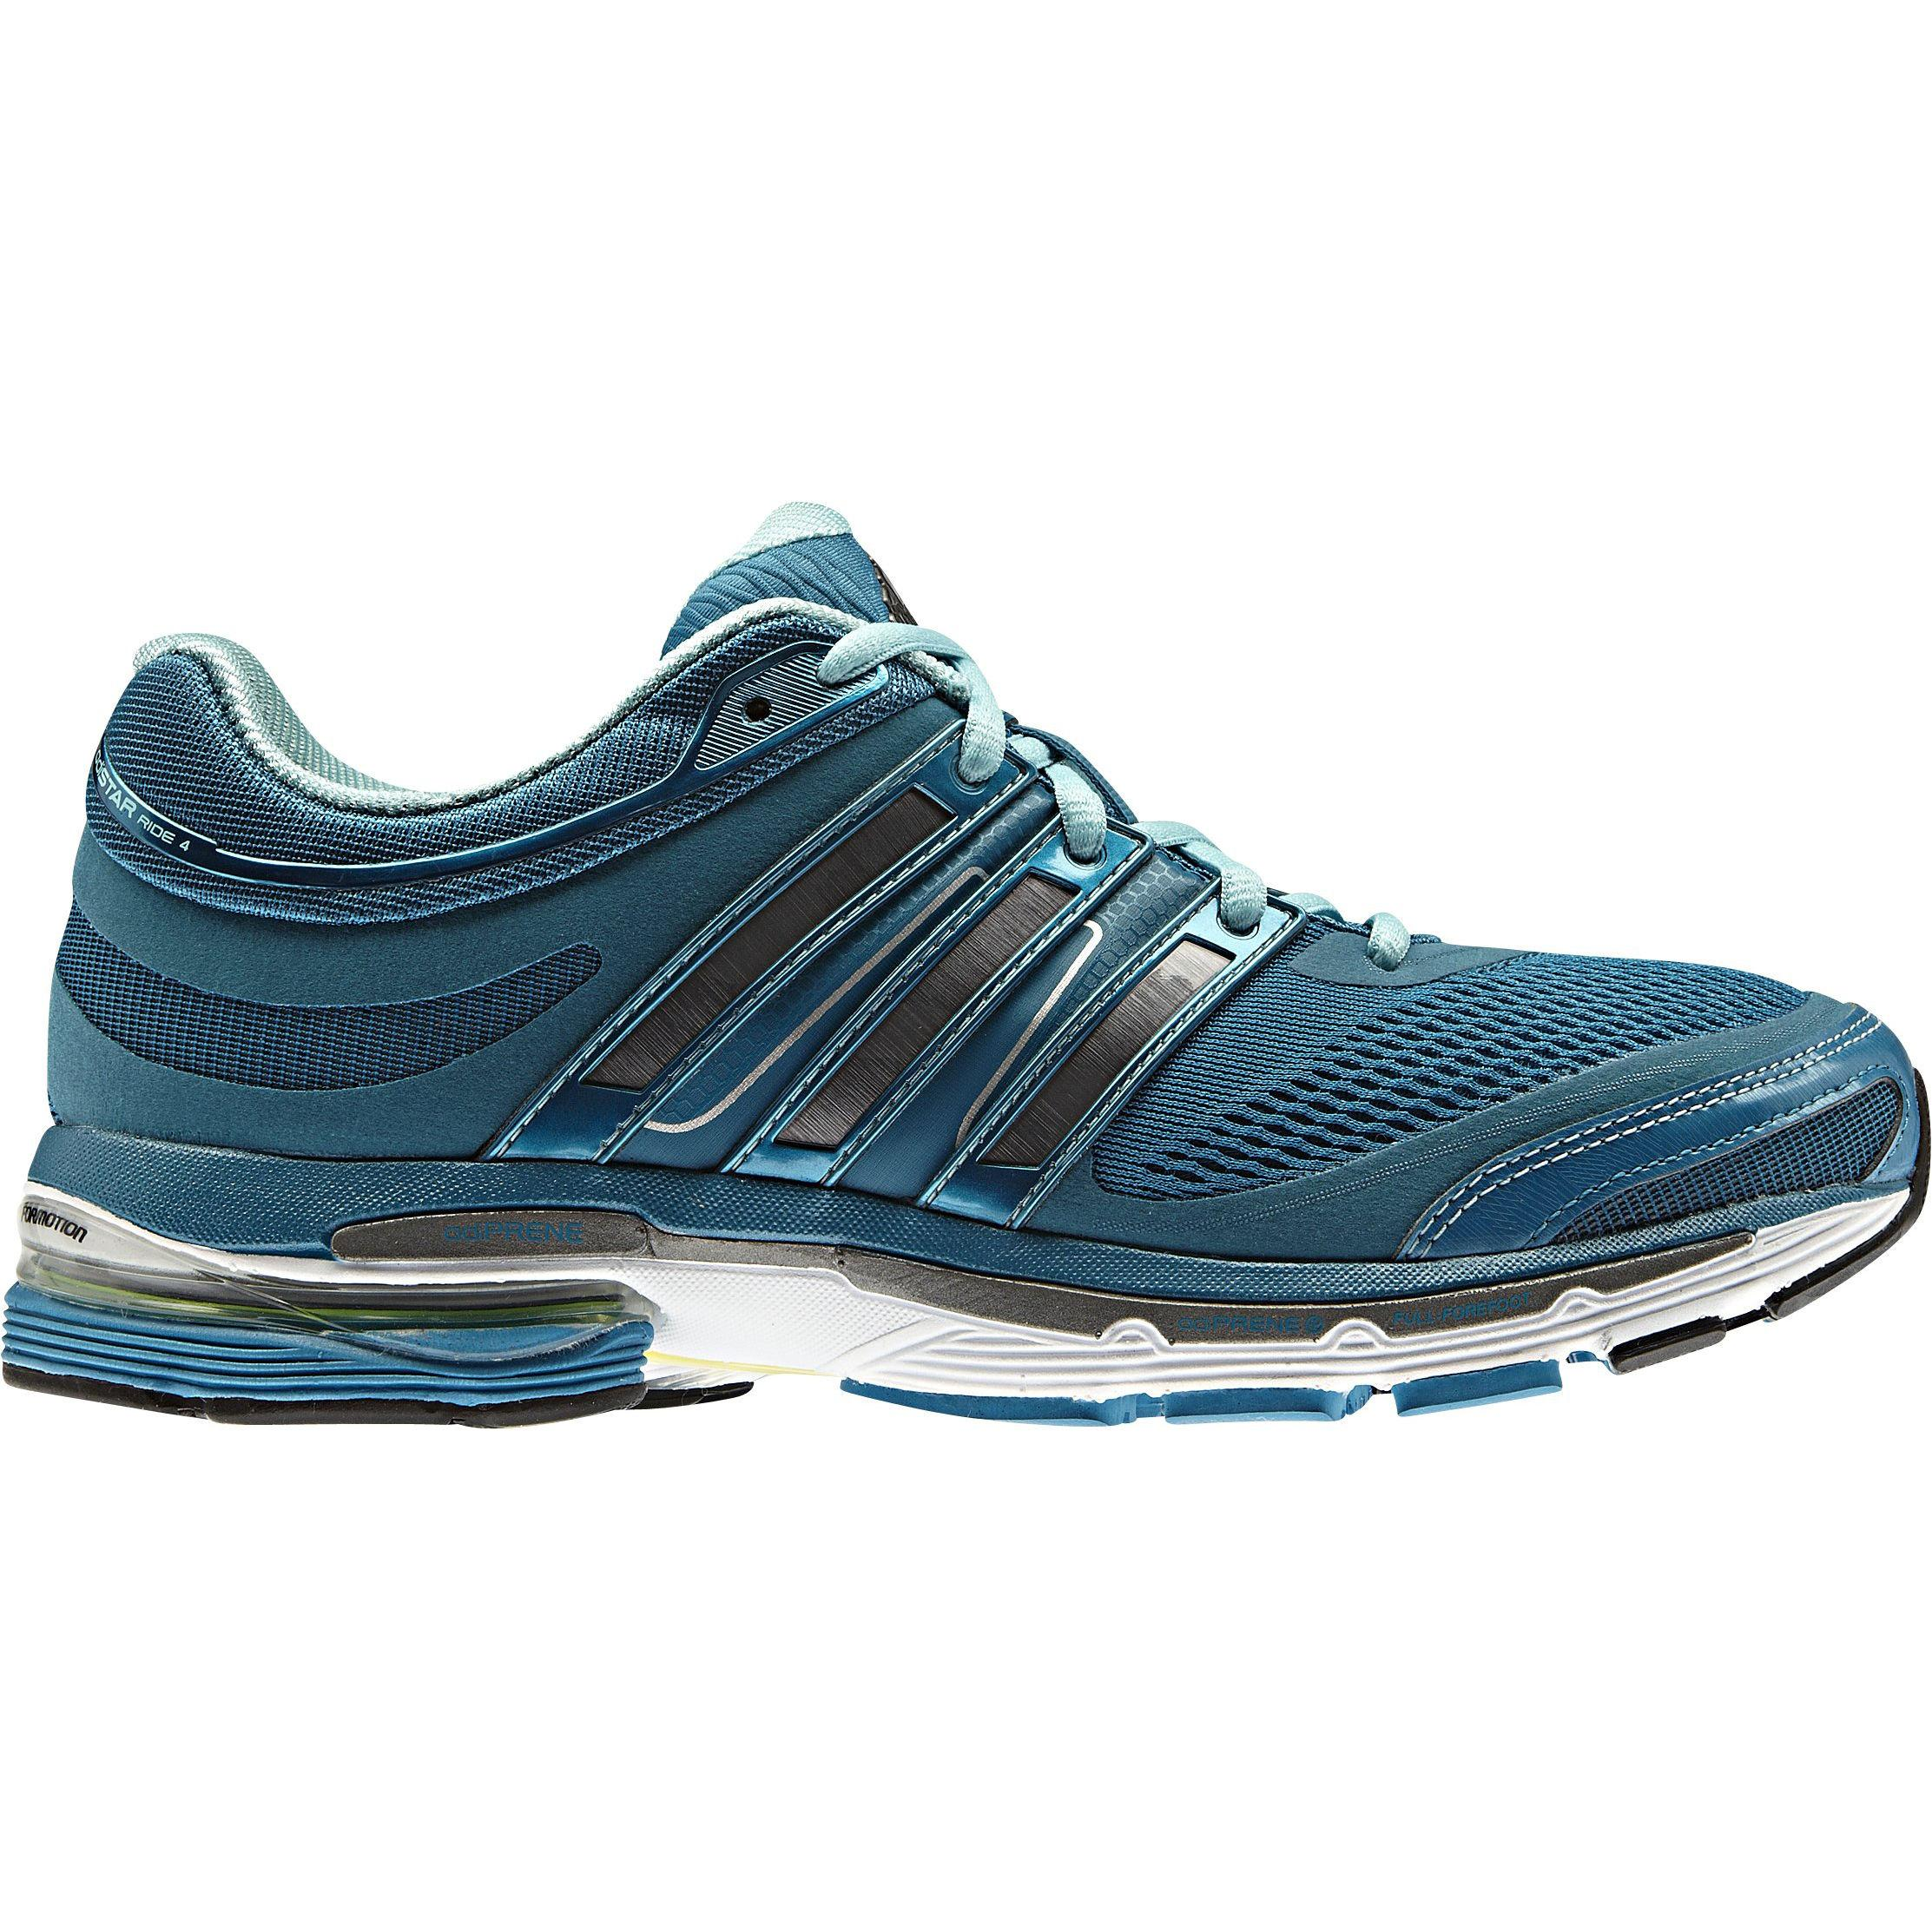 big sale 6d8e1 9d14f Foto Zapatillas para mujer Adidas - Adistar Ride 4 - UK 5.5